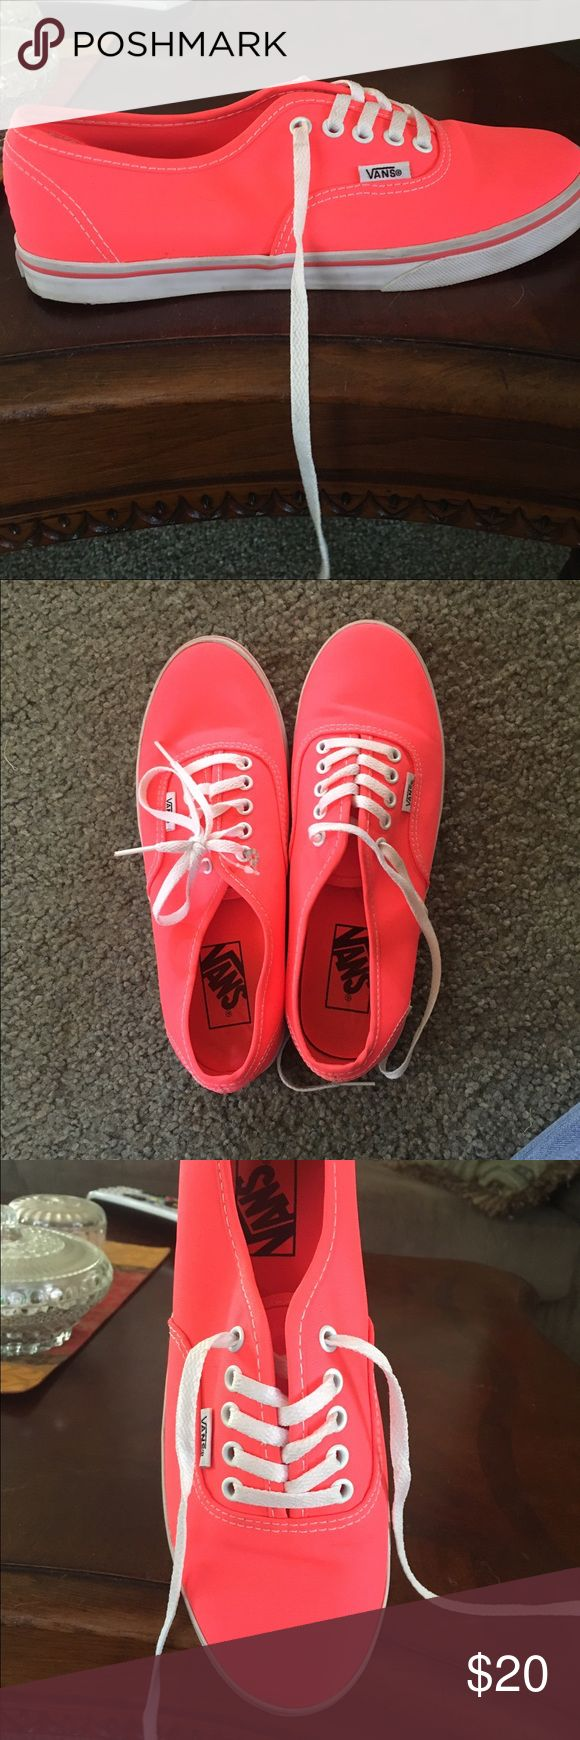 neon coral Vans Coral vans. Women's size 7. These were only worn once and are in perfect condition. Vans Shoes Sneakers